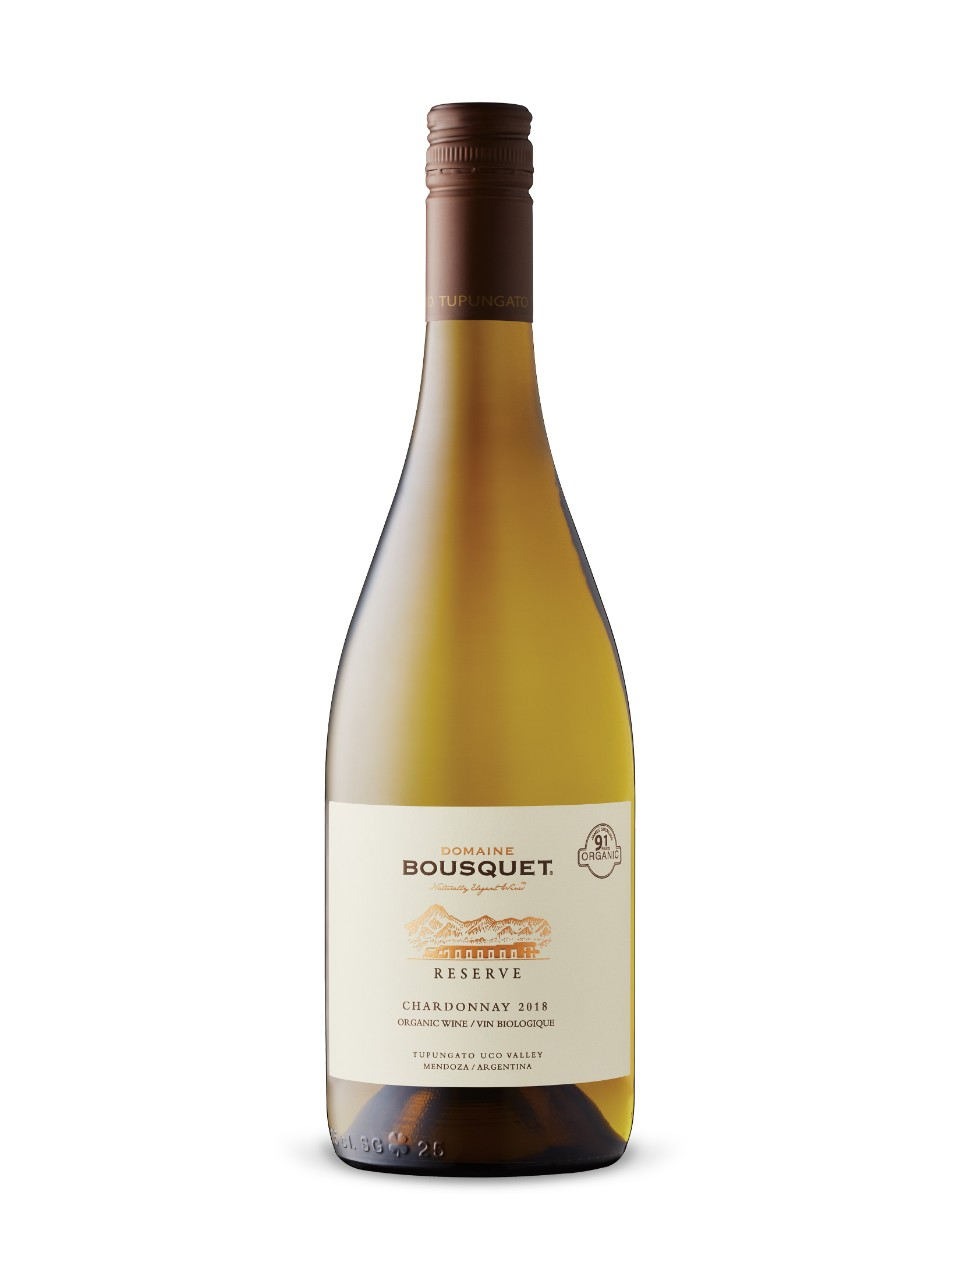 Domaine Bousquet Reserve Chardonnay 2018 from LCBO